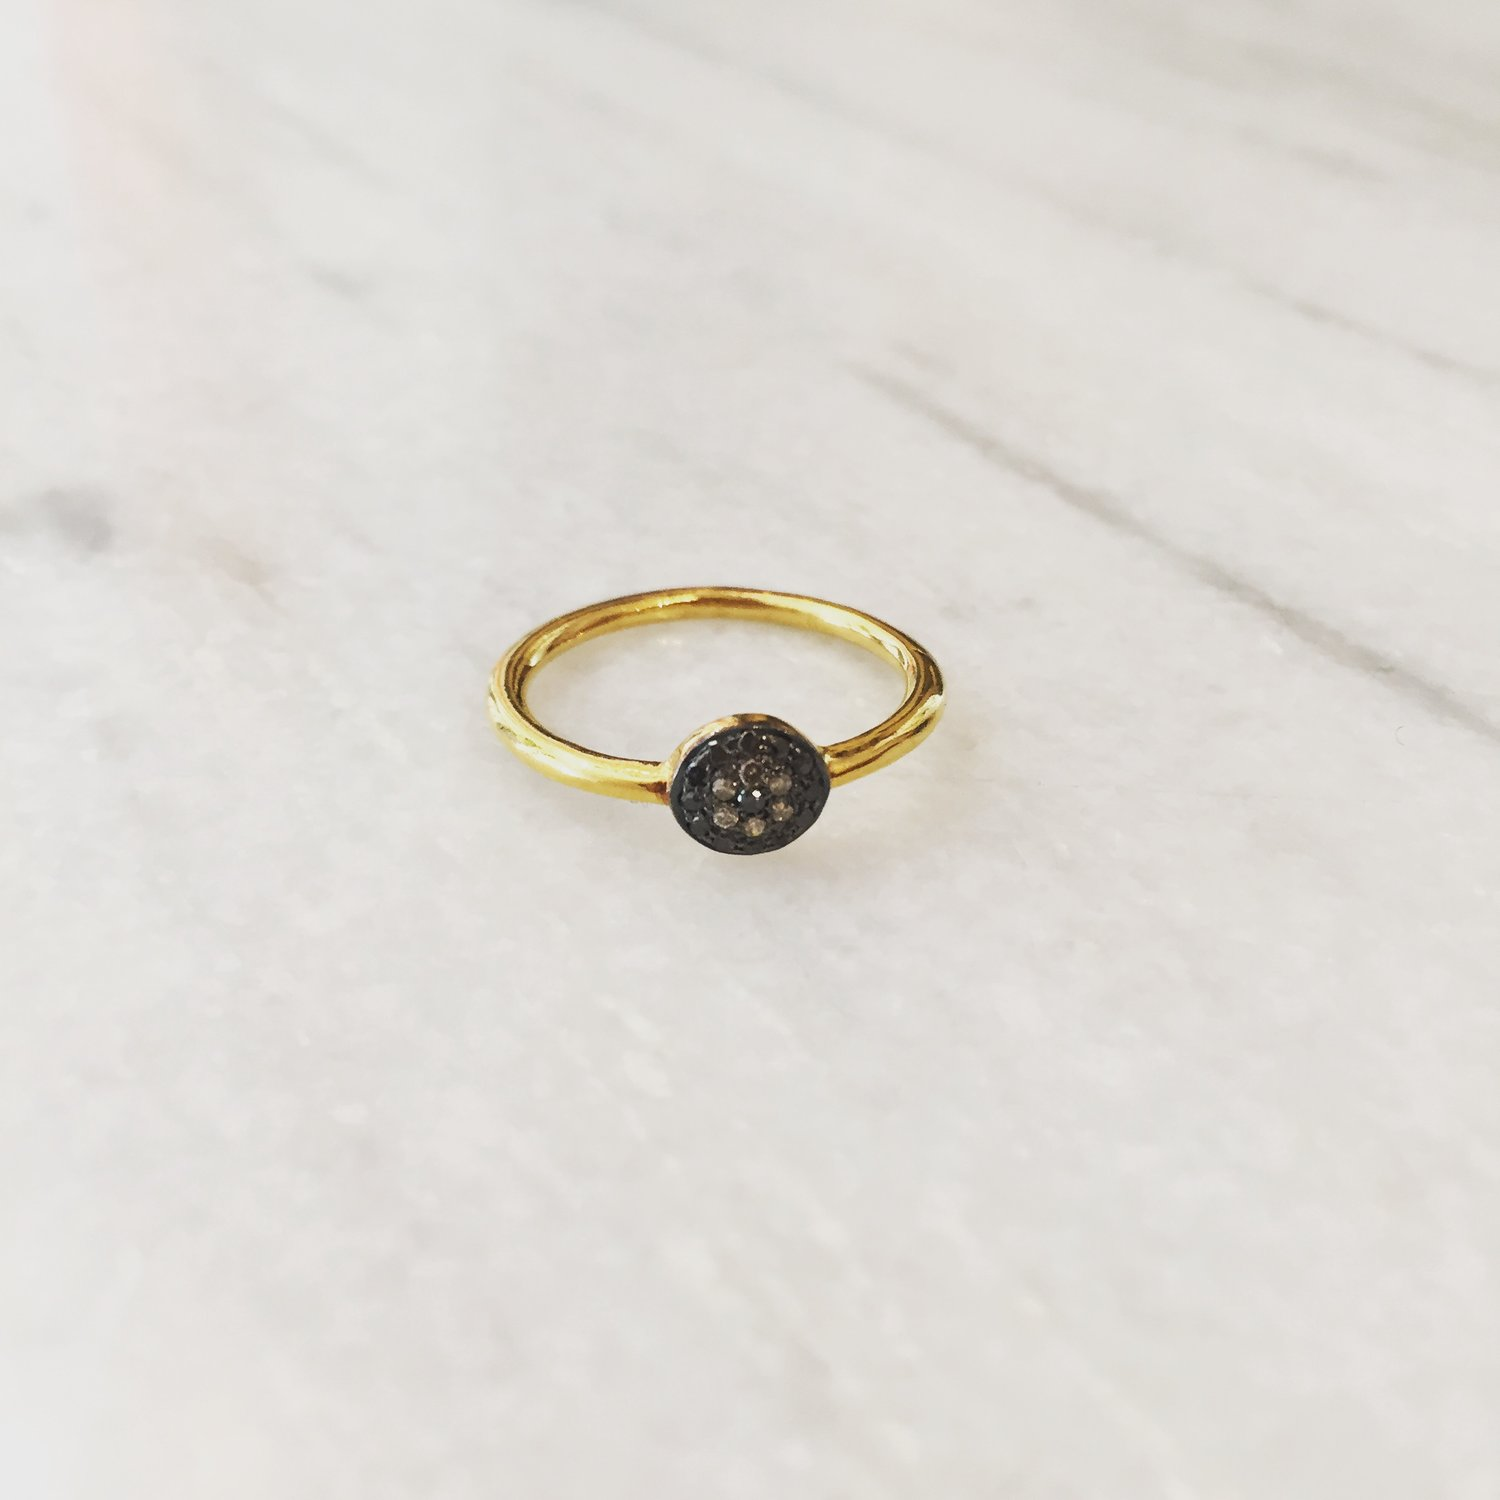 Wild Ring in 24K Gold-Plated Silver and Diamonds 5 OCTOBRE VjNvYspgoW